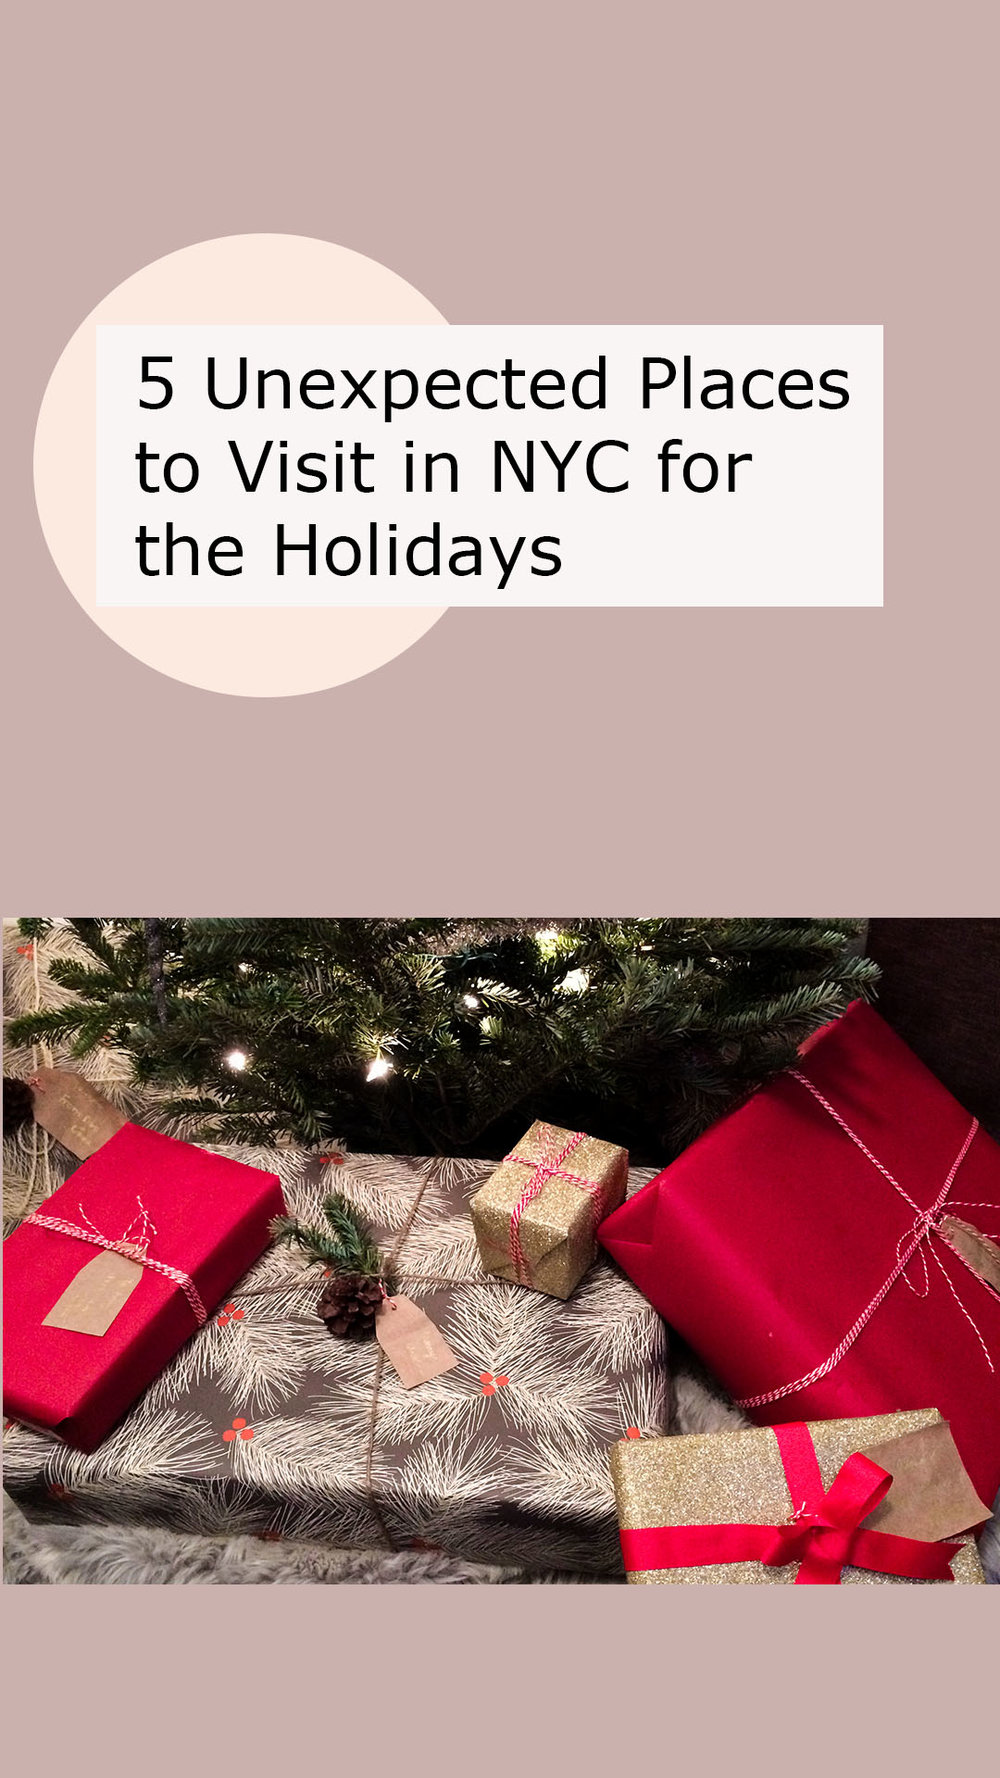 5 Unexpected Places to Visit in NYC for the Holidays.jpg